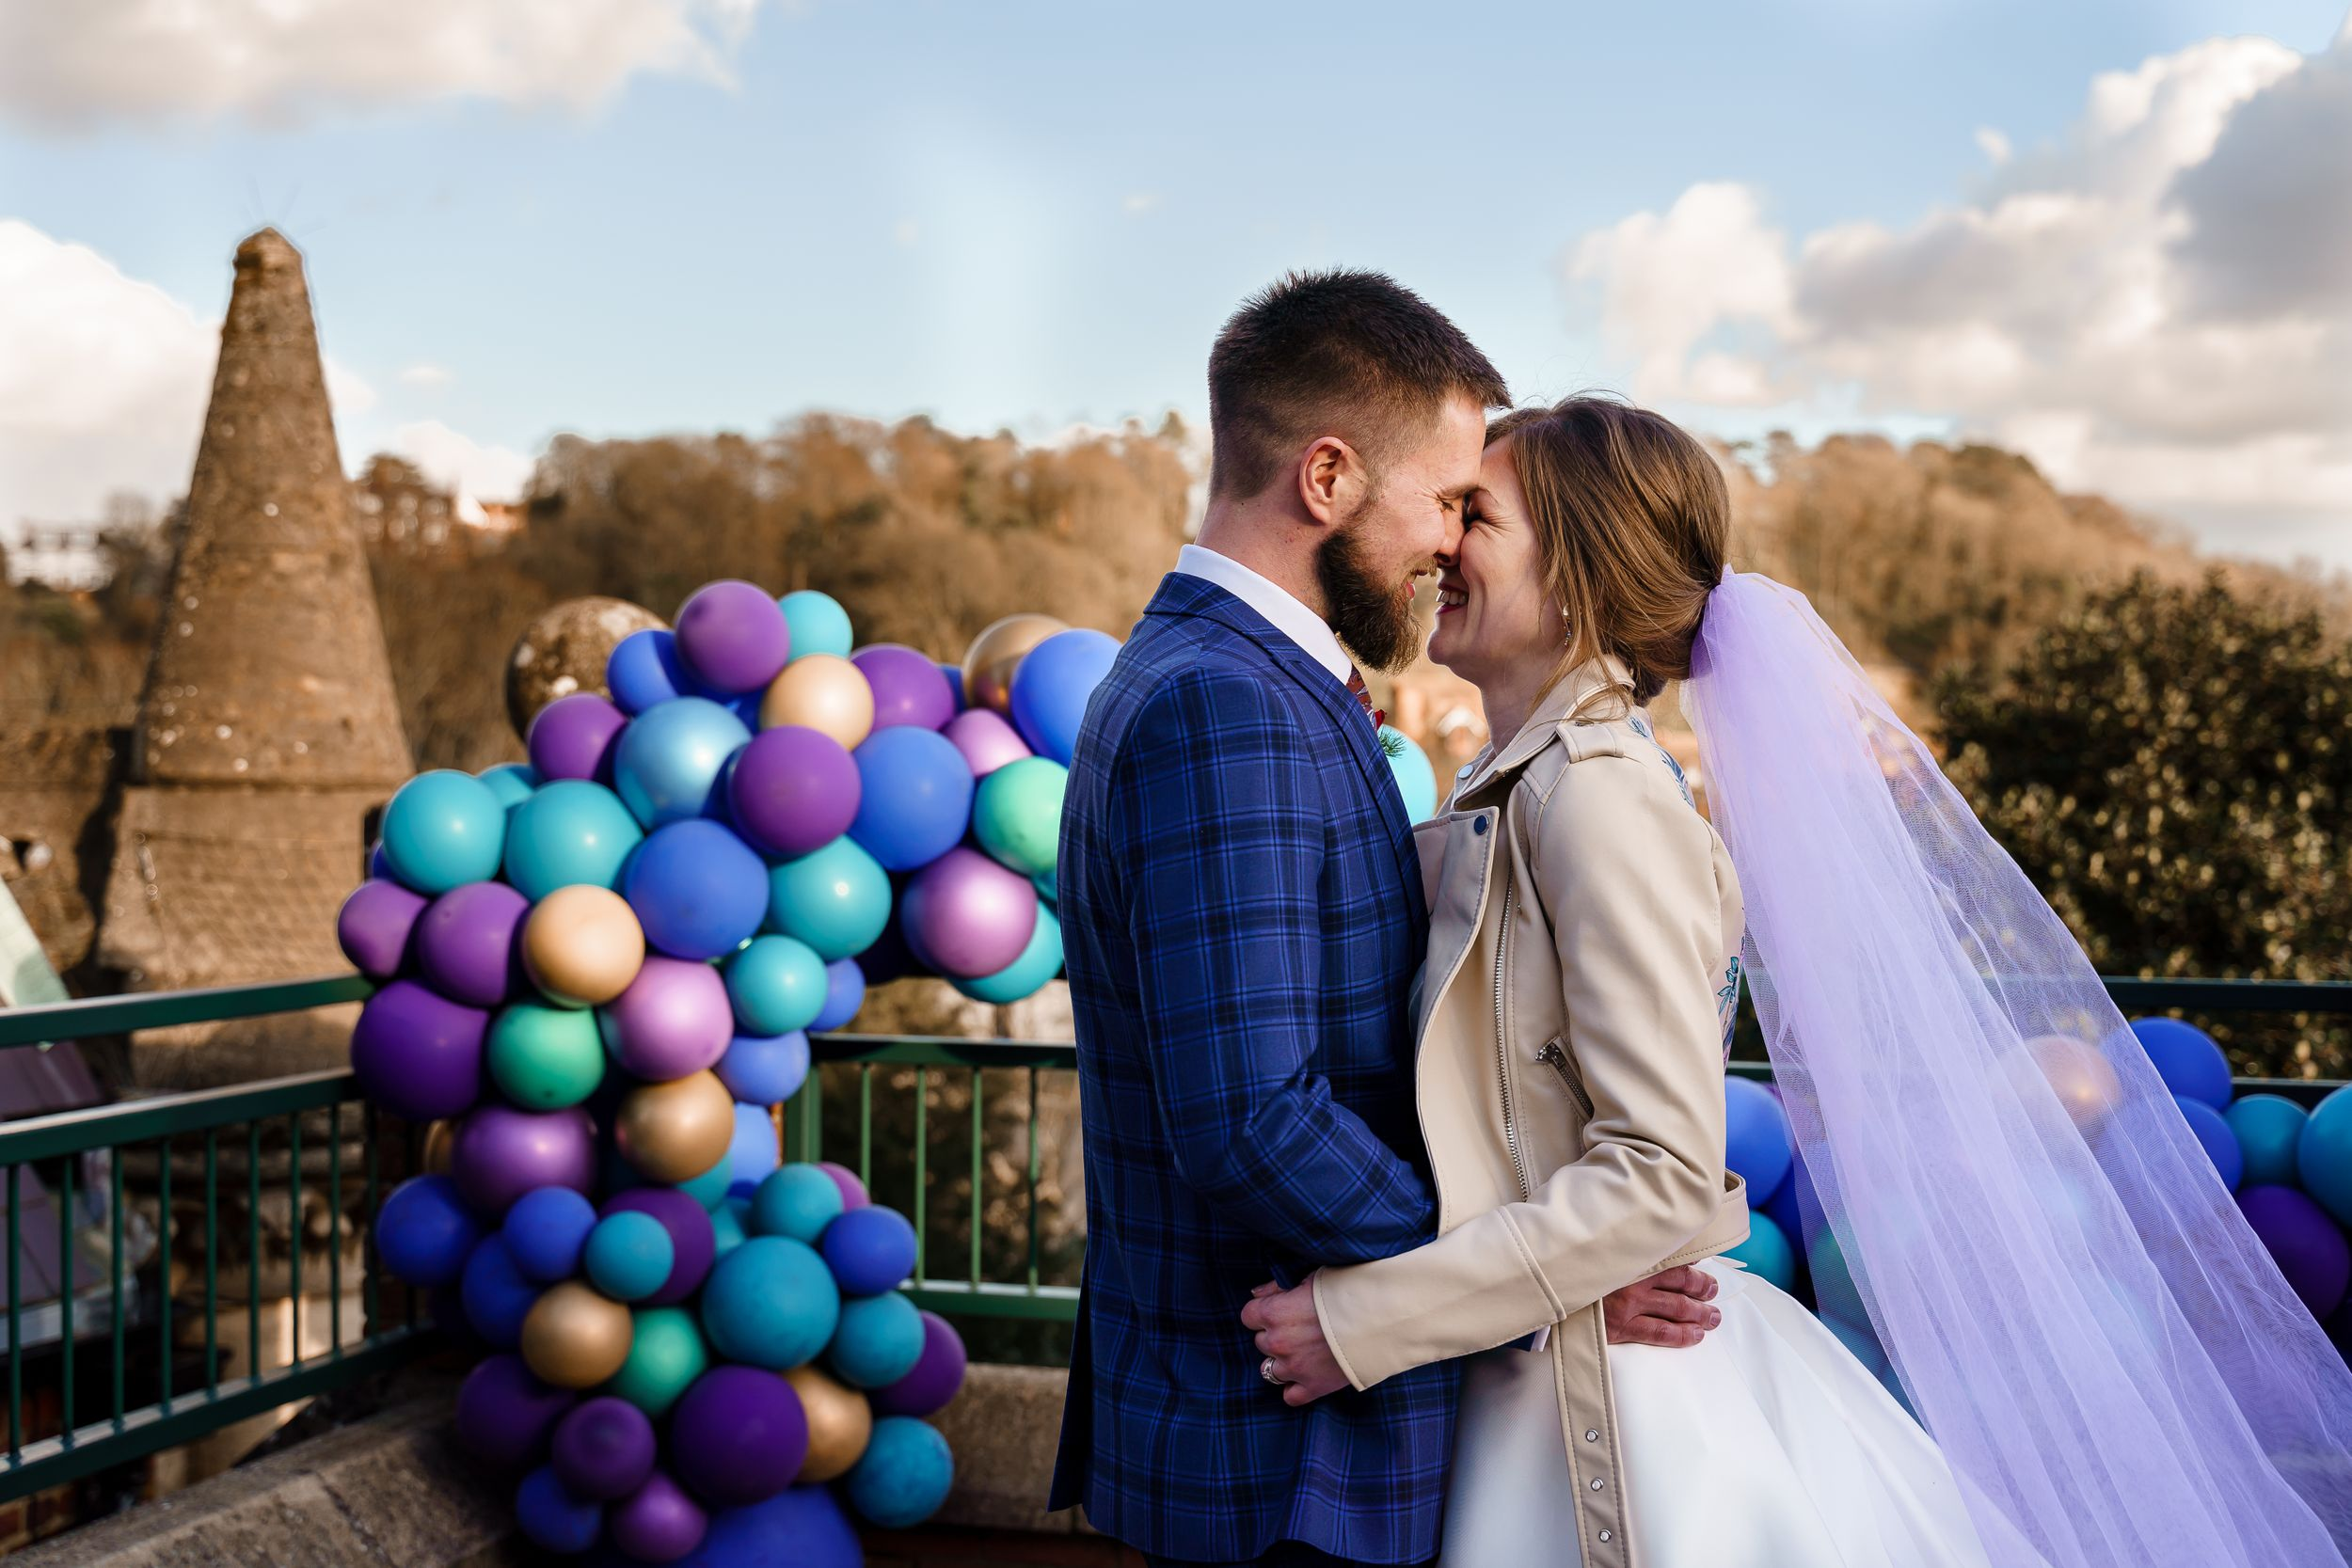 Colourful peacock wedding theme photography with balloons and a purple veil at Winchester Guildhall.